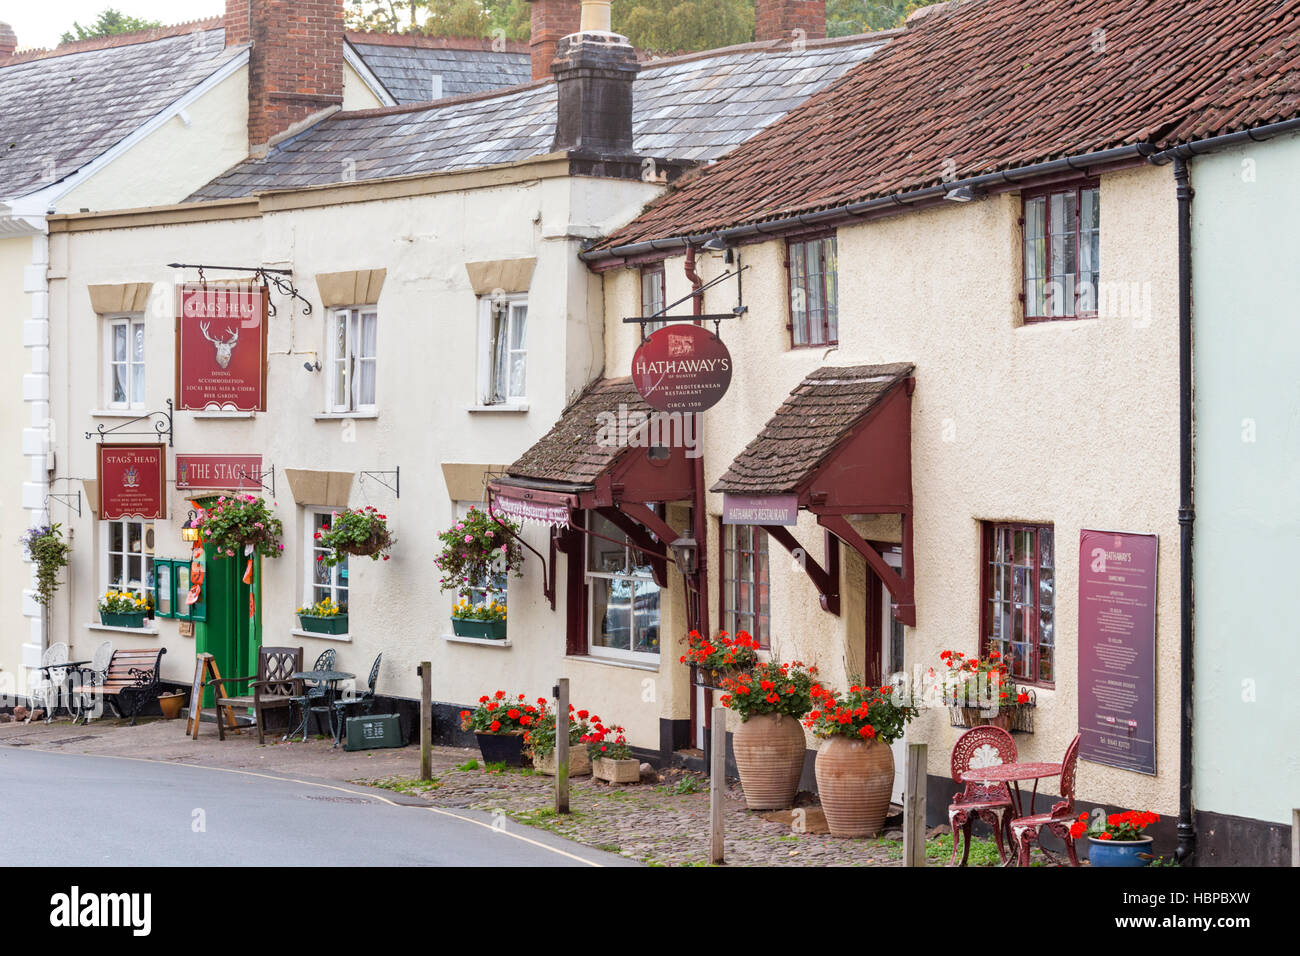 Historic pubs and shops in Dunster village near Minehead, Somerset, England, UK - Stock Image